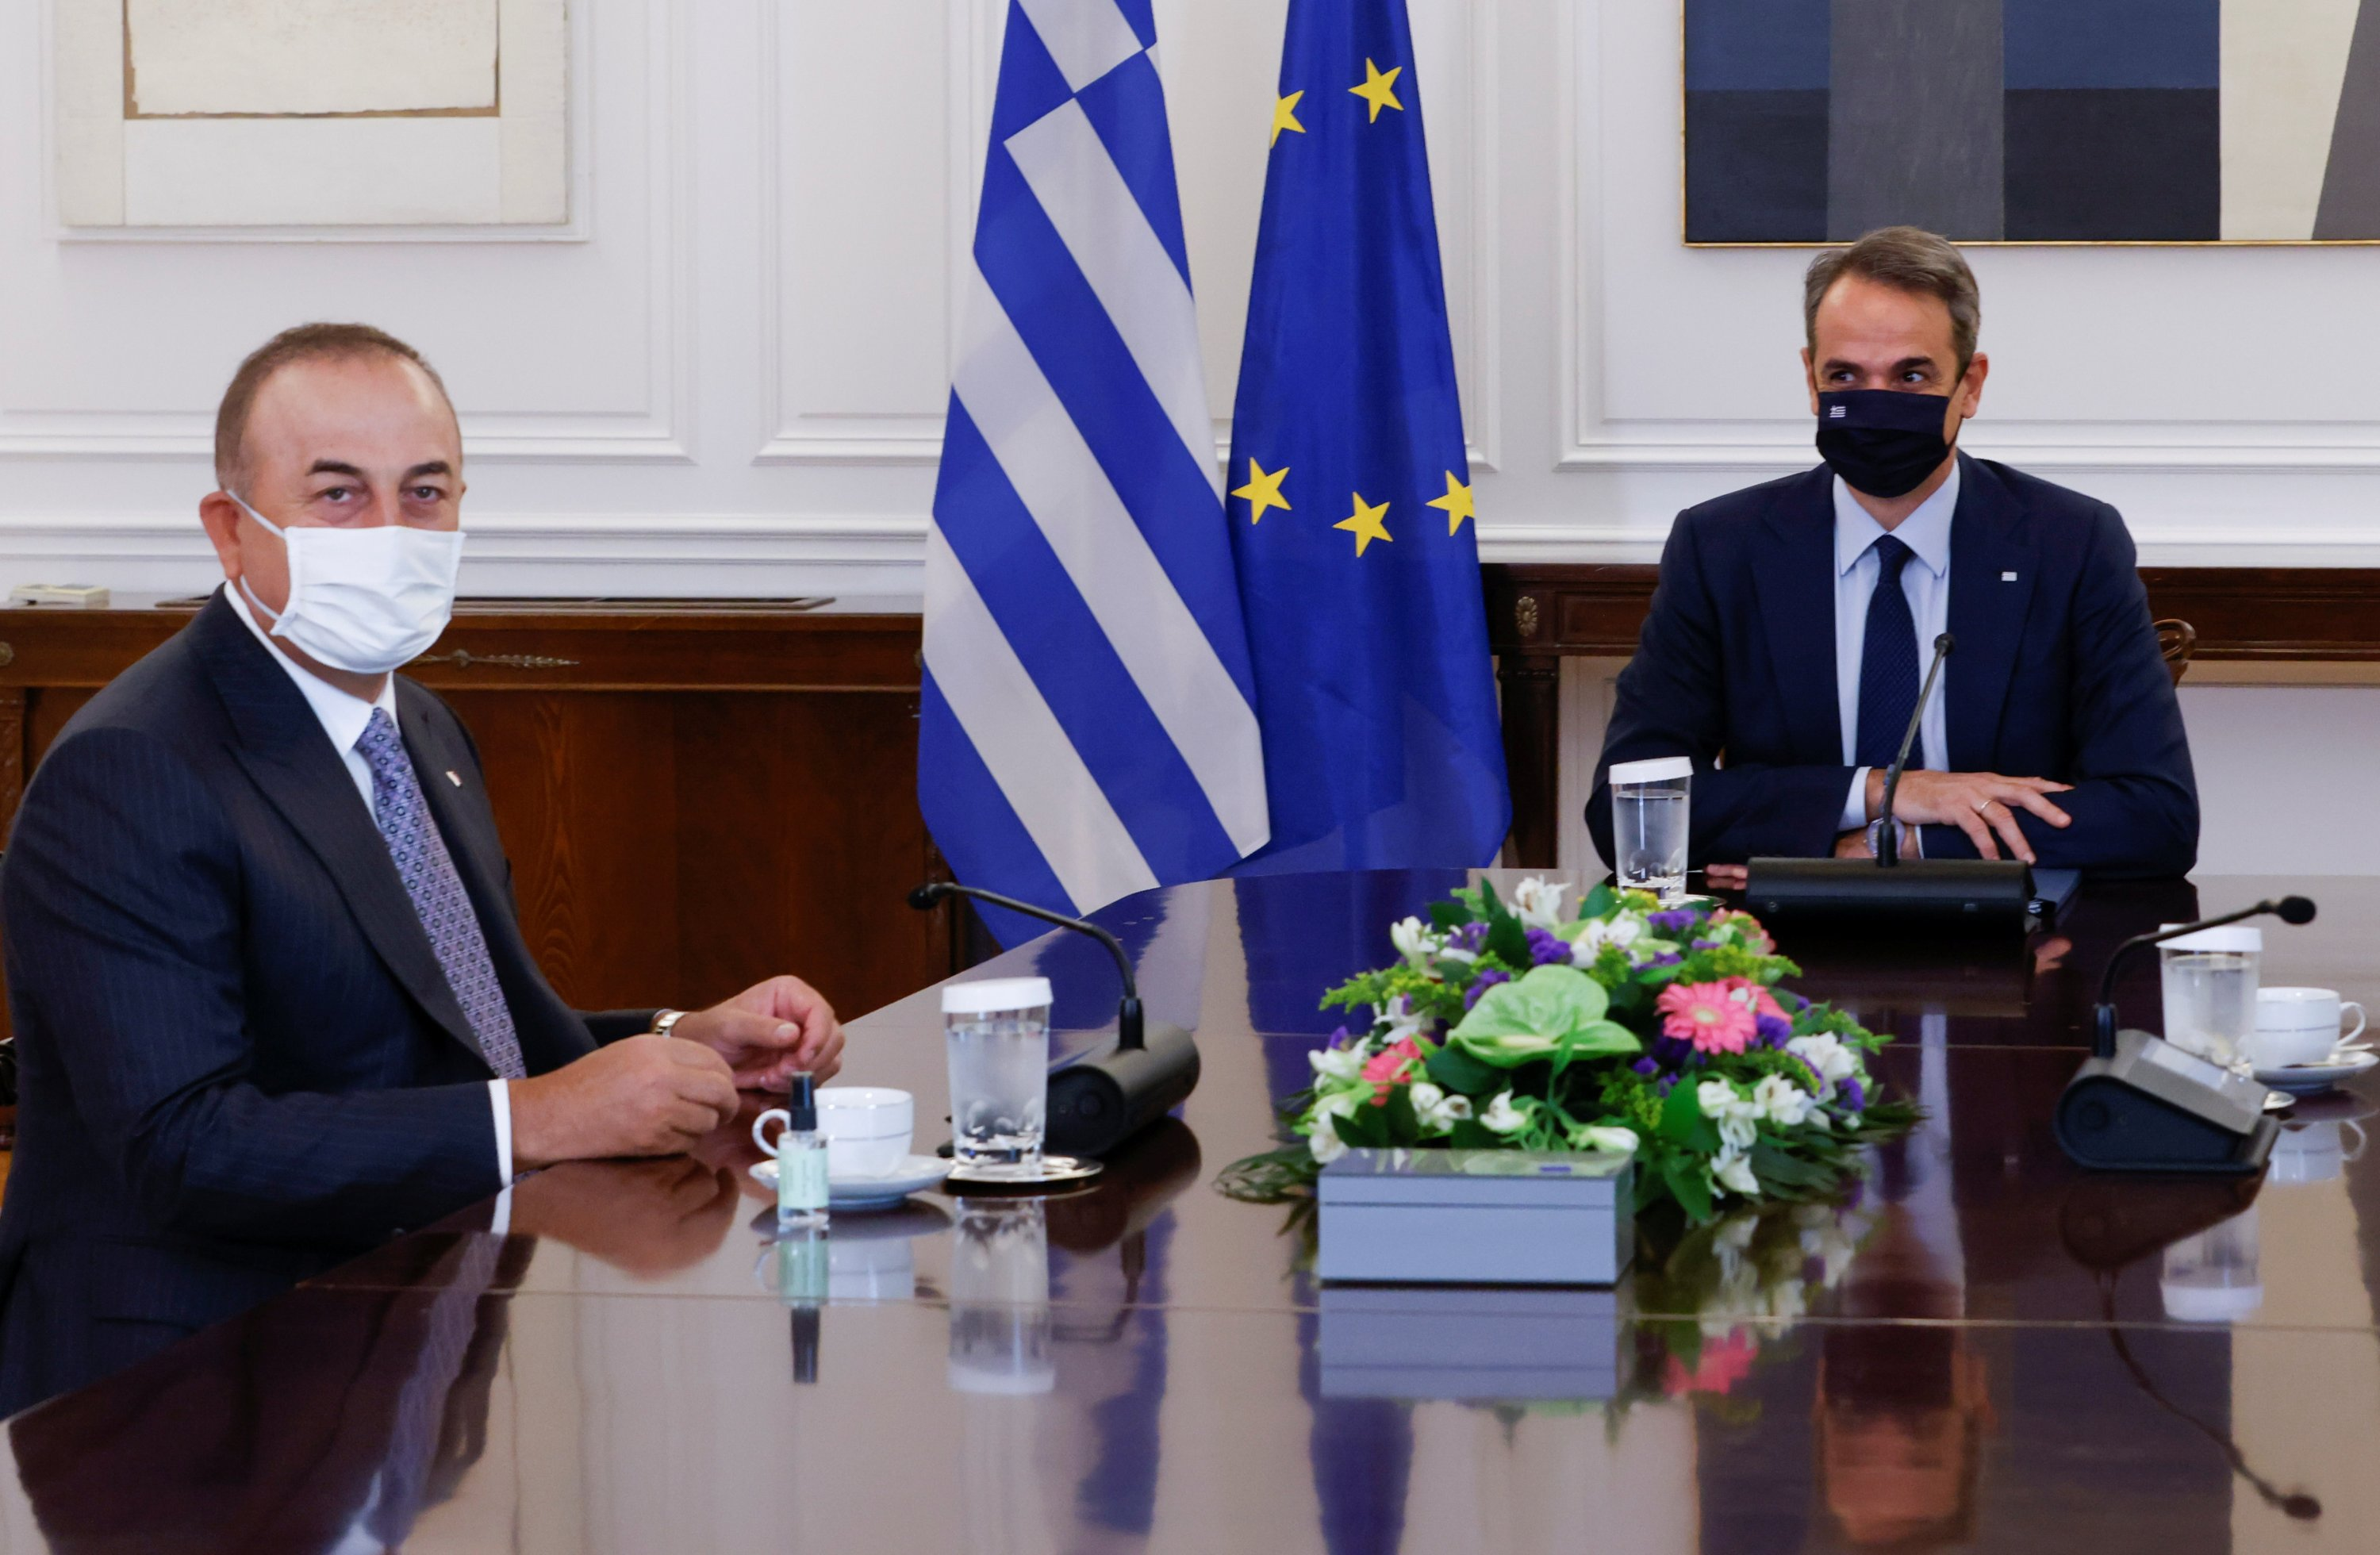 Greek Prime Minister Kyriakos Mitsotakis (R) meets with Turkish Foreign Minister Mevlüt Çavuşoğlu at the Maximos Mansion in Athens, Greece, May 31, 2021. (REUTERS Photo)